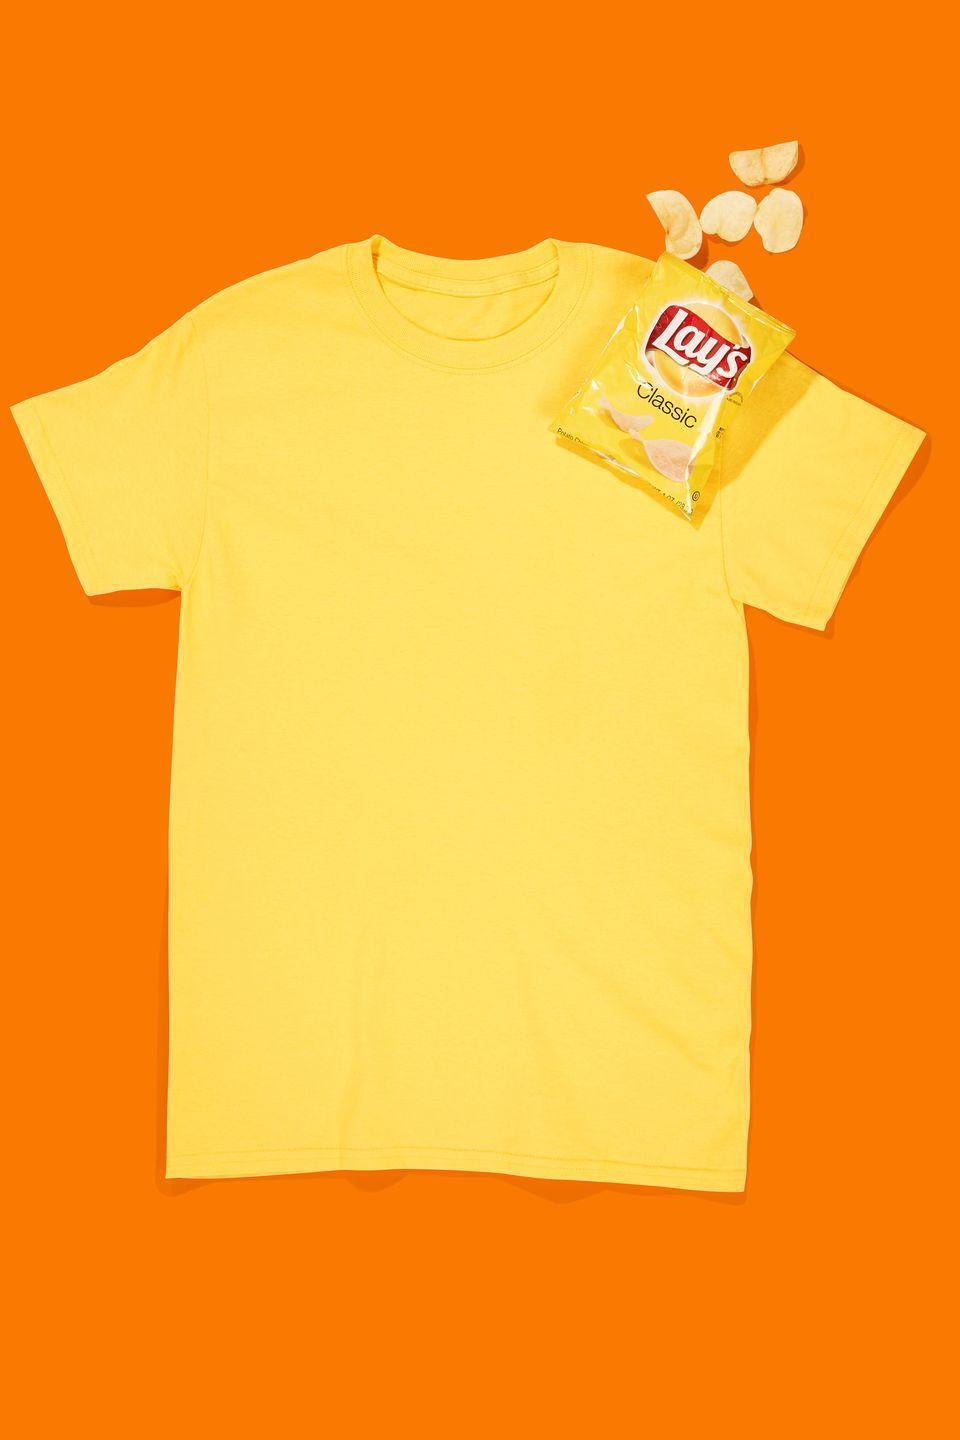 """<p>Be the punniest person at the Halloween party by hot-glueing a snack-size bag of Lay's potato chips to a <span class=""""redactor-unlink"""">yellow t-shirt</span>.</p><p><strong><a class=""""link rapid-noclick-resp"""" href=""""https://www.amazon.com/Next-Level-Signature-Boyfriend-T-Shirt/dp/B0092ZMFRA/?tag=syn-yahoo-20&ascsubtag=%5Bartid%7C10070.g.490%5Bsrc%7Cyahoo-us"""" rel=""""nofollow noopener"""" target=""""_blank"""" data-ylk=""""slk:SHOP YELLOW TEES"""">SHOP YELLOW TEES</a></strong></p>"""